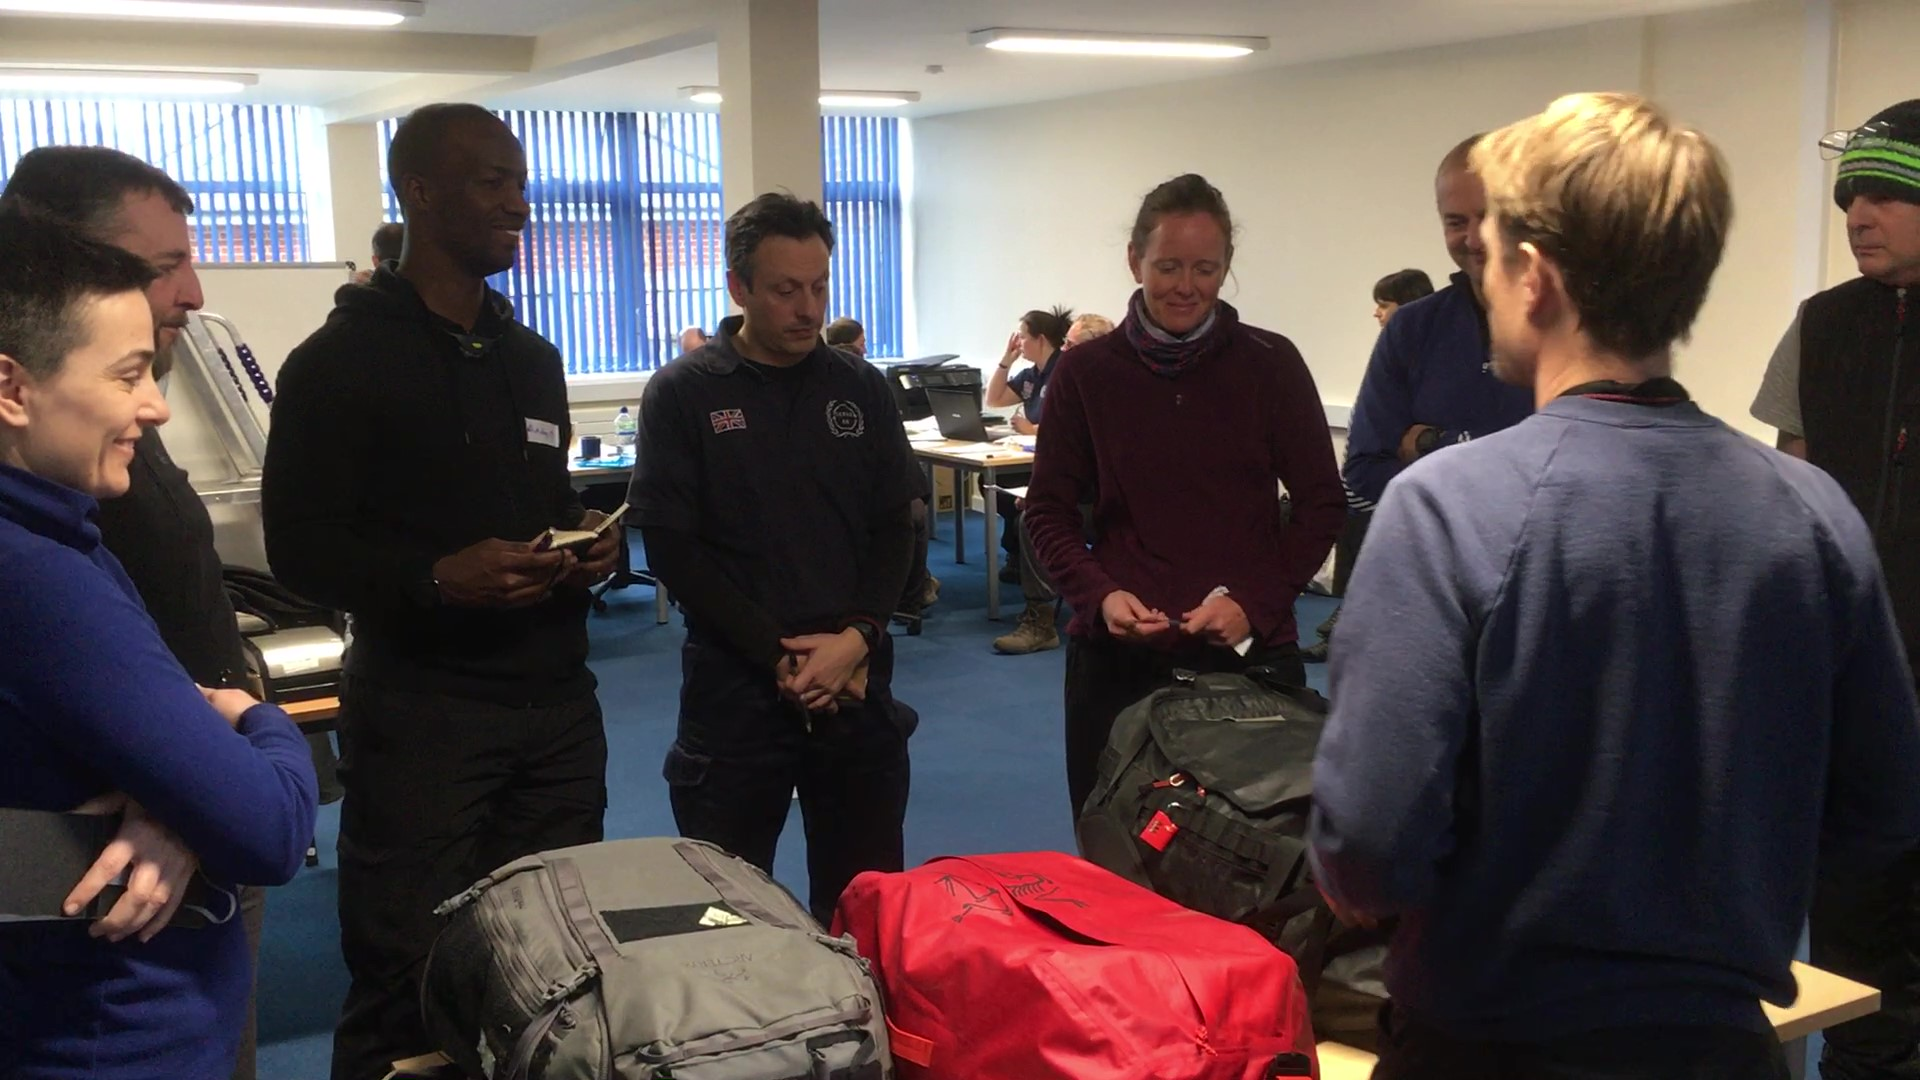 Rab explains some of the kit needed by Serve On operational members.